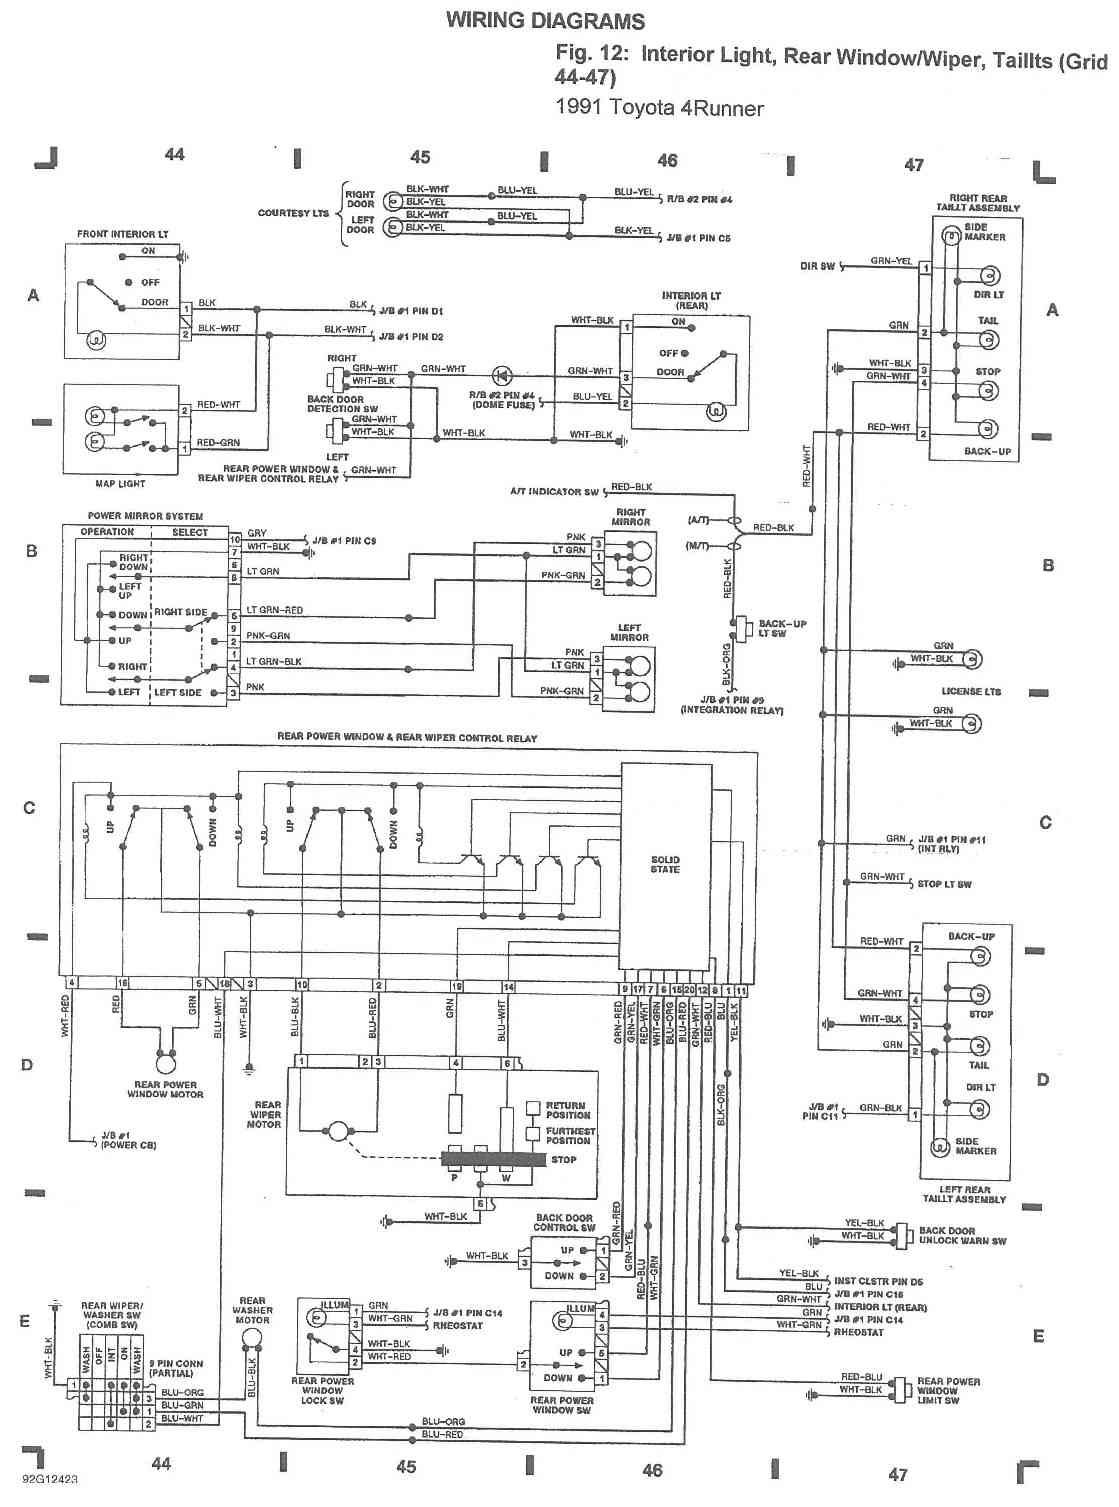 Pontiac Montana Power Window Switch Wiring Diagram | Toyota ... on pinout diagrams, car motors diagrams, car exhaust, car battery, dodge ram vacuum diagrams, car vacuum diagrams, battery diagrams, chevy truck diagrams, club car manual wire diagrams, car parts diagrams, factory car stereo diagrams, 7.3 ford diesel diagrams, club car manuals and diagrams, car door lock diagram, car electrical, car starting system, autozone repair diagrams, 3930 ford tractor parts diagrams, custom stereo diagrams, car schematics,